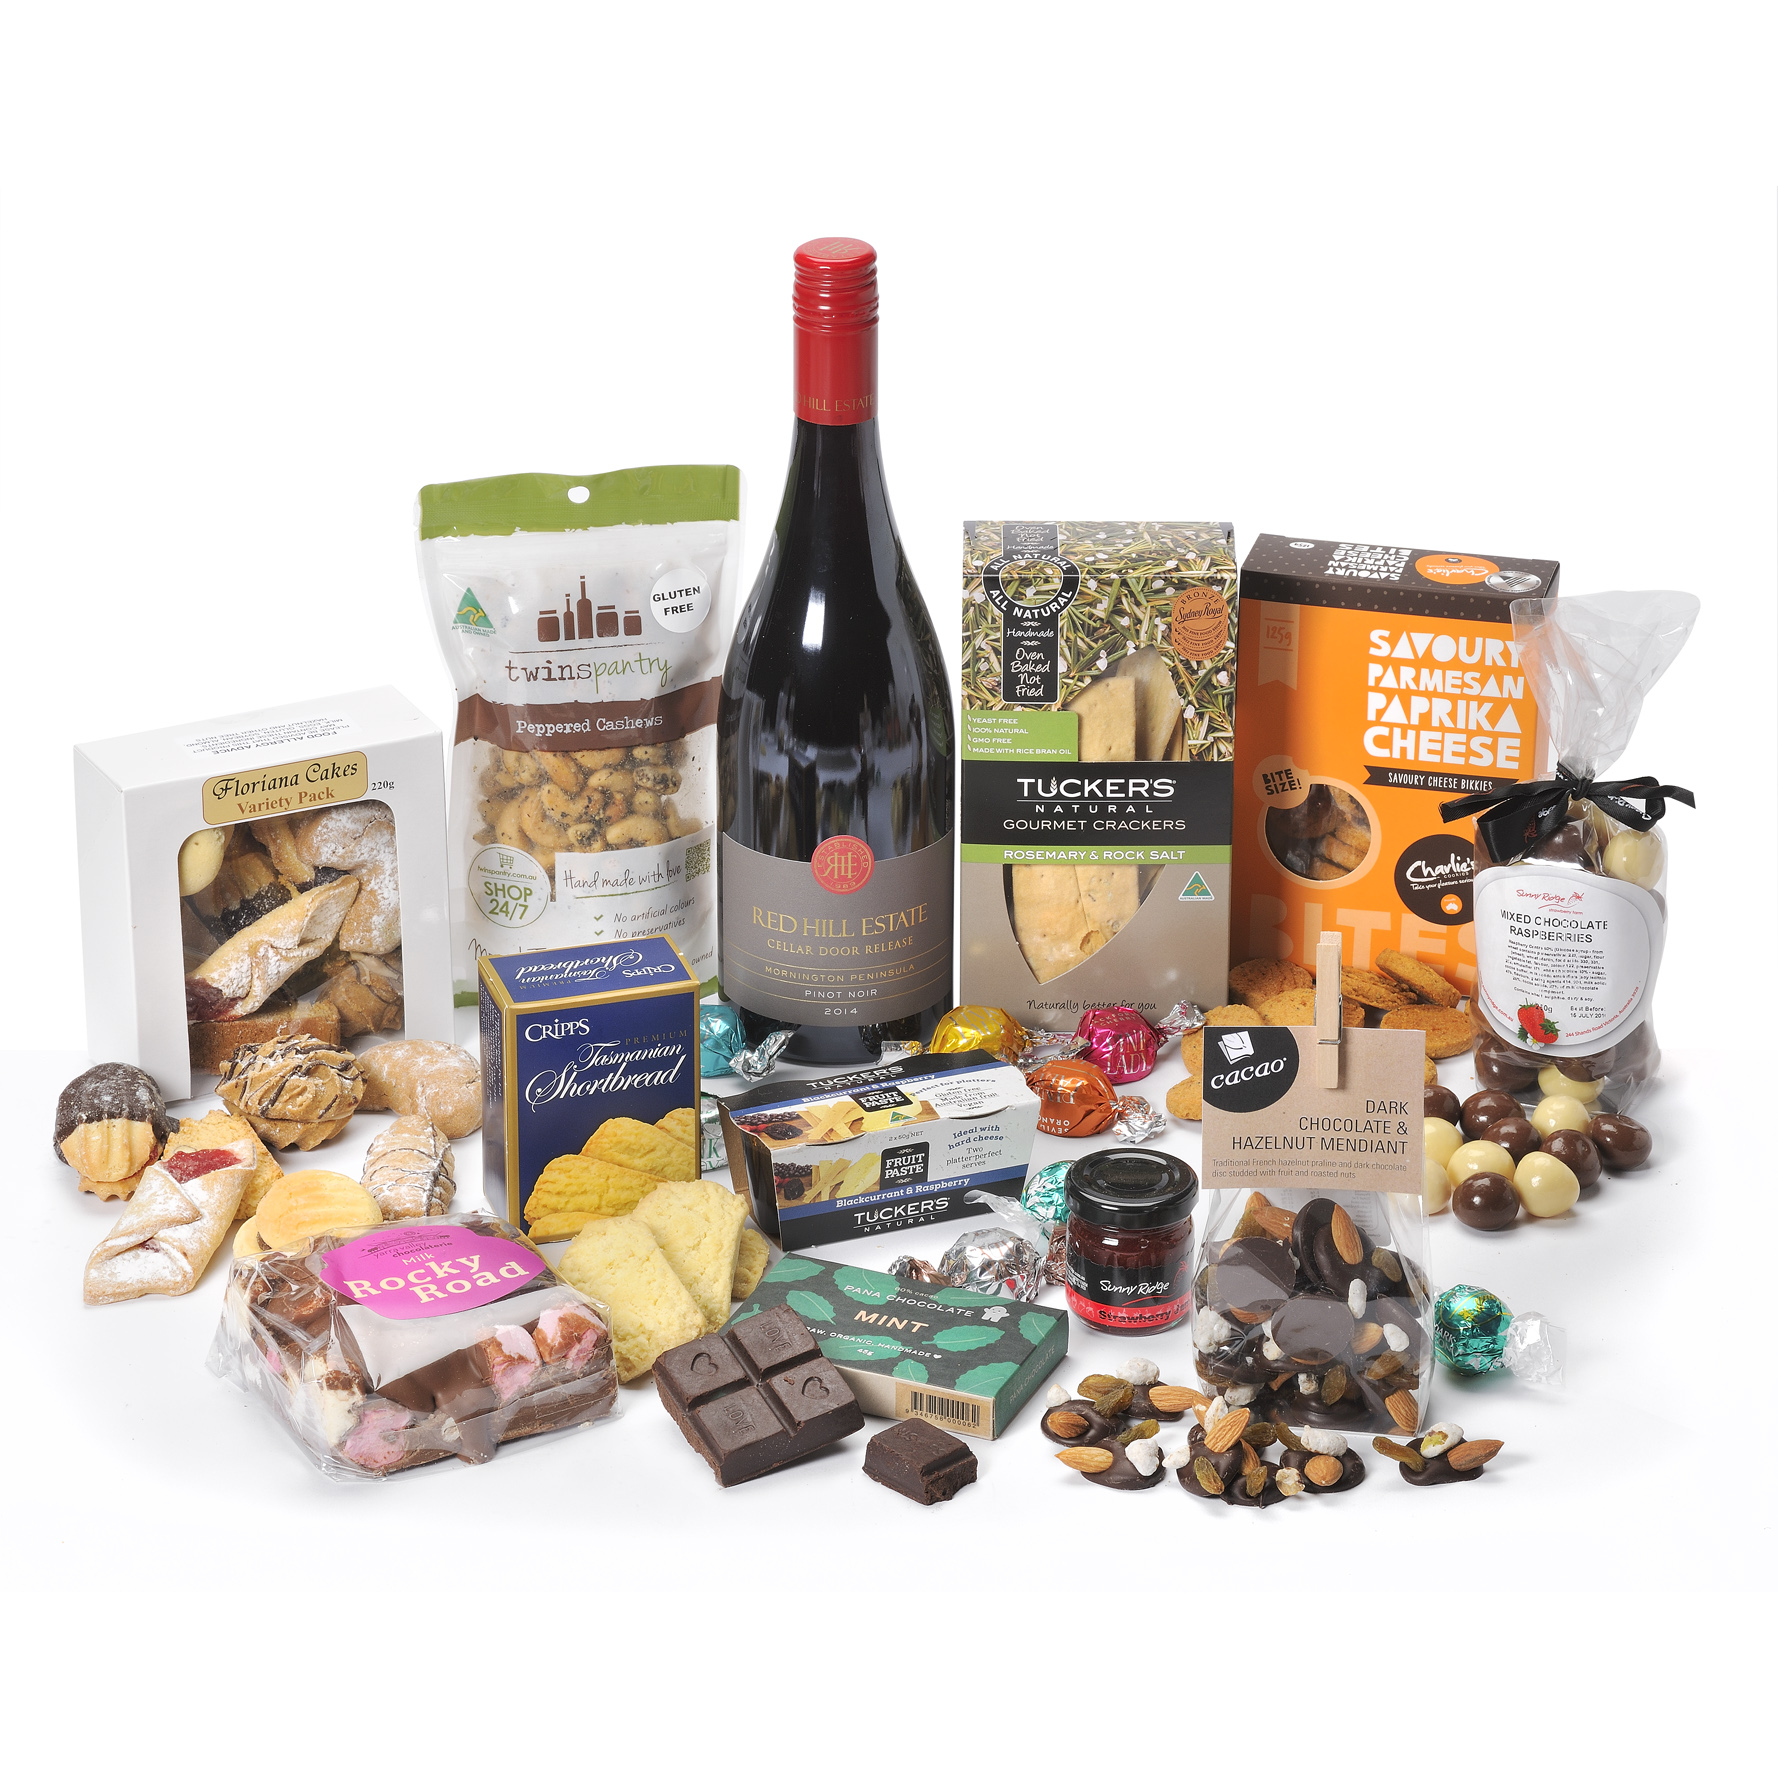 Gourmet gift hampers gluten free organic hampers unique quality australian foods wines negle Choice Image